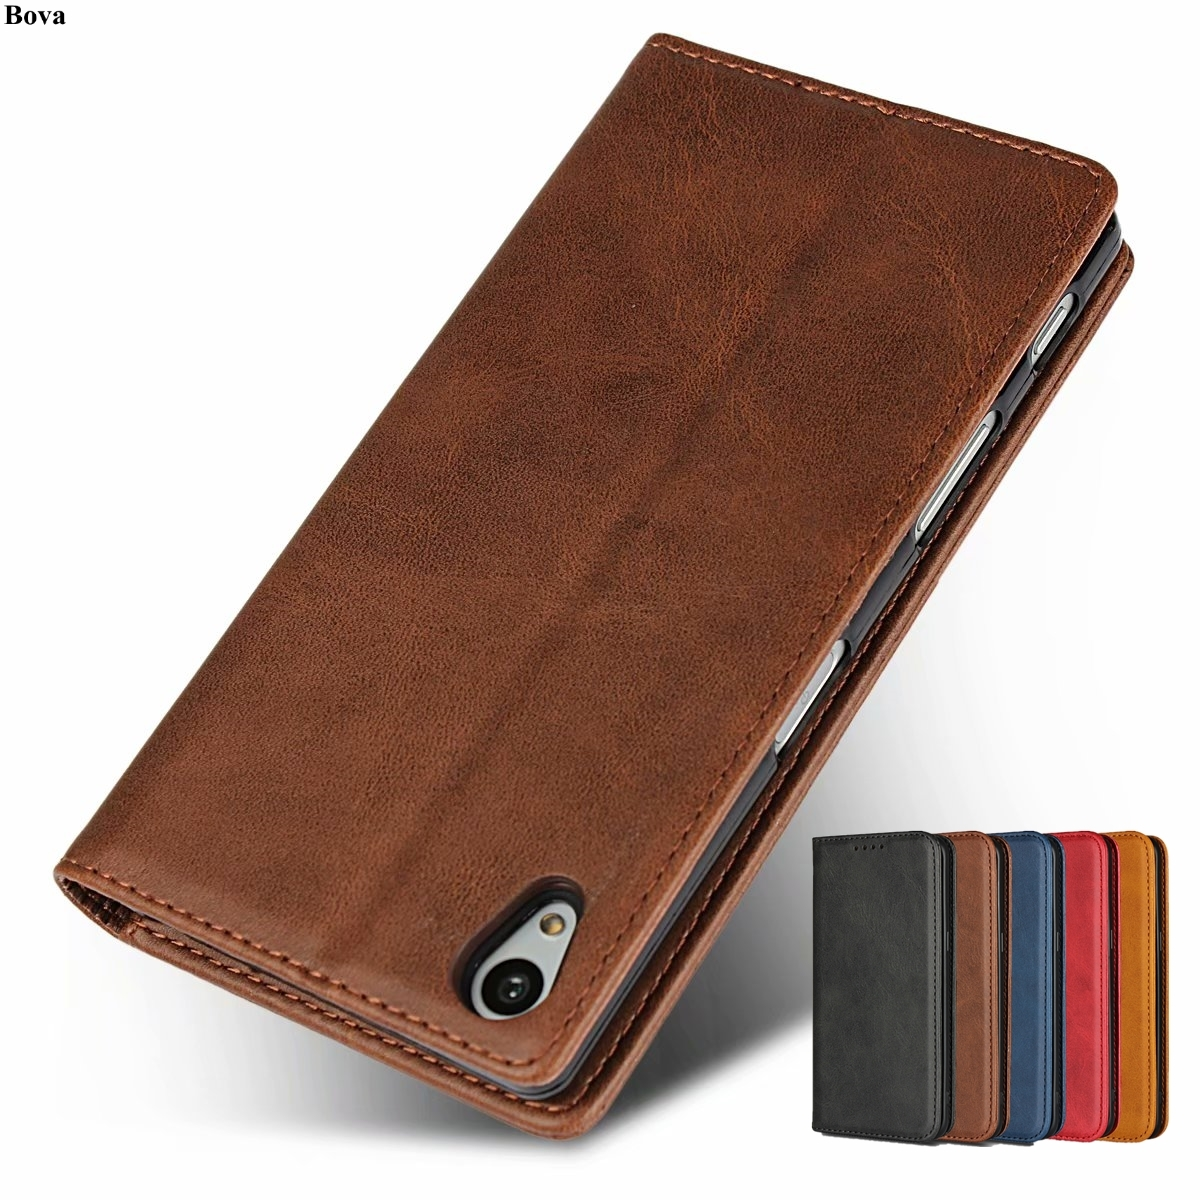 Leather case for <font><b>Sony</b></font> <font><b>Xperia</b></font> <font><b>Z5</b></font> E6603 E6633 <font><b>E6683</b></font> for <font><b>Sony</b></font> <font><b>Z5</b></font> flip case card holder Magnetic attraction cover Case Holster image